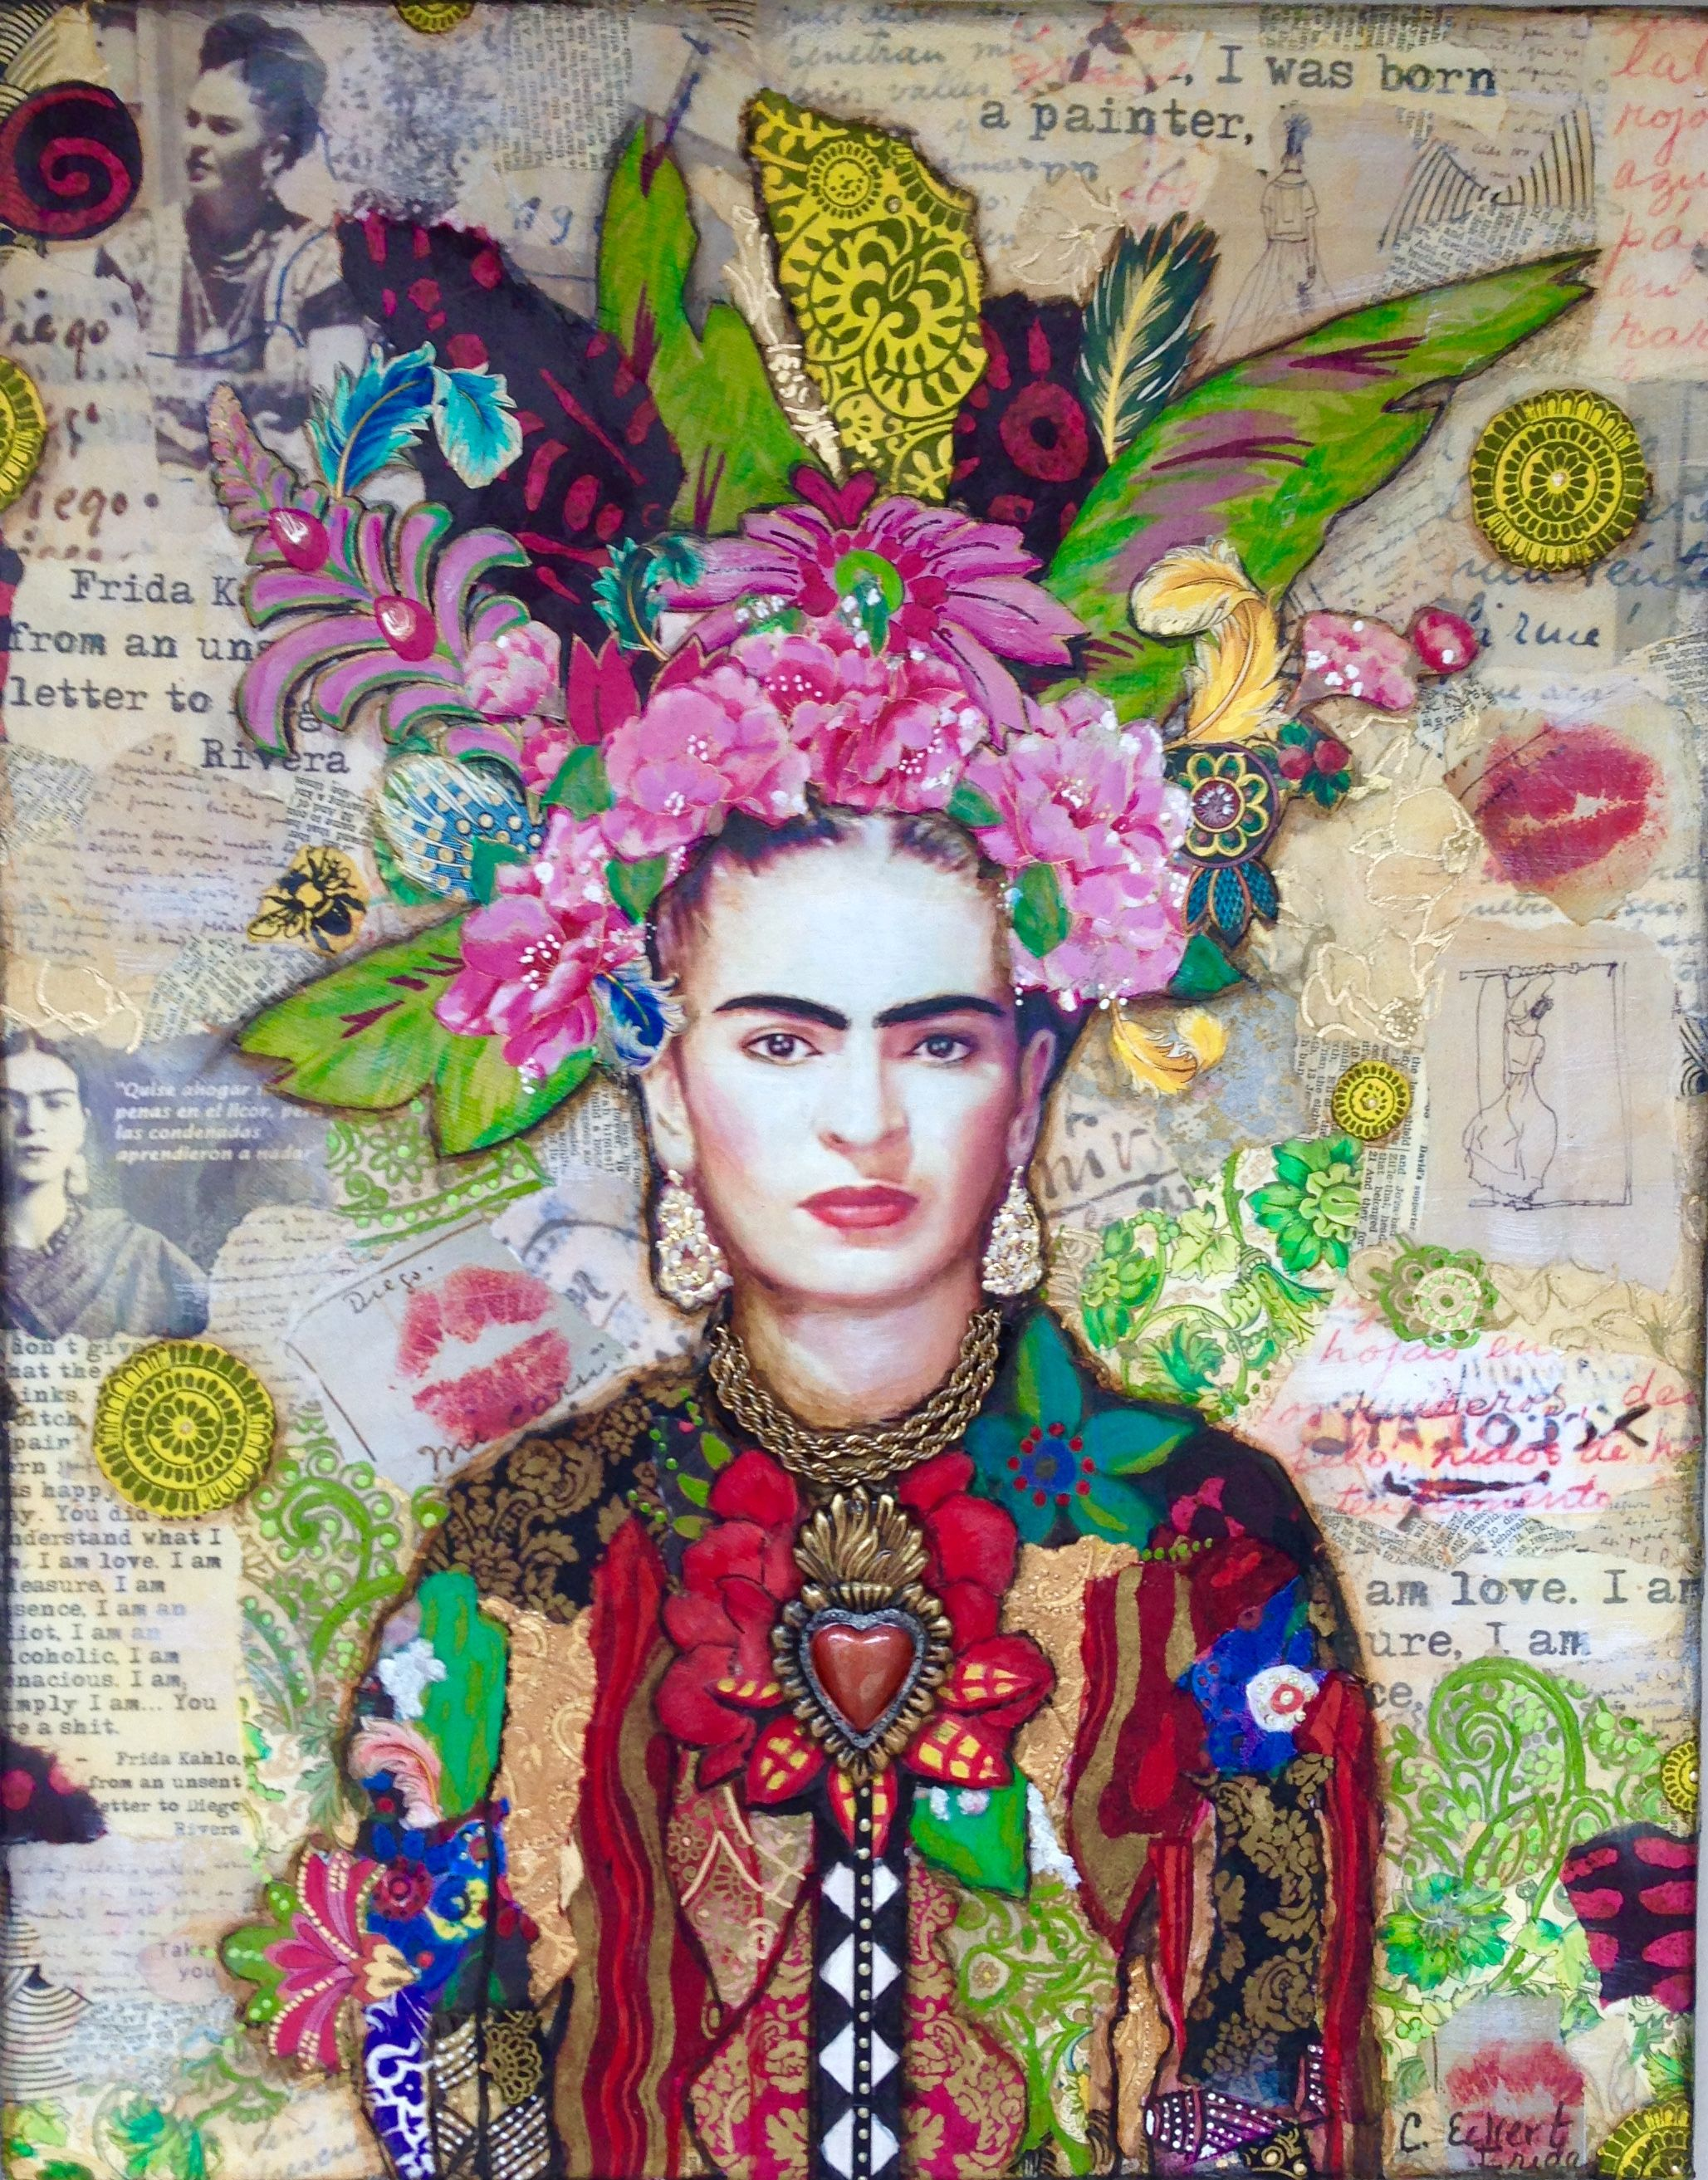 frida kahlo collage art painting by carrie eckert frida pinterest collage art frida kahlo. Black Bedroom Furniture Sets. Home Design Ideas